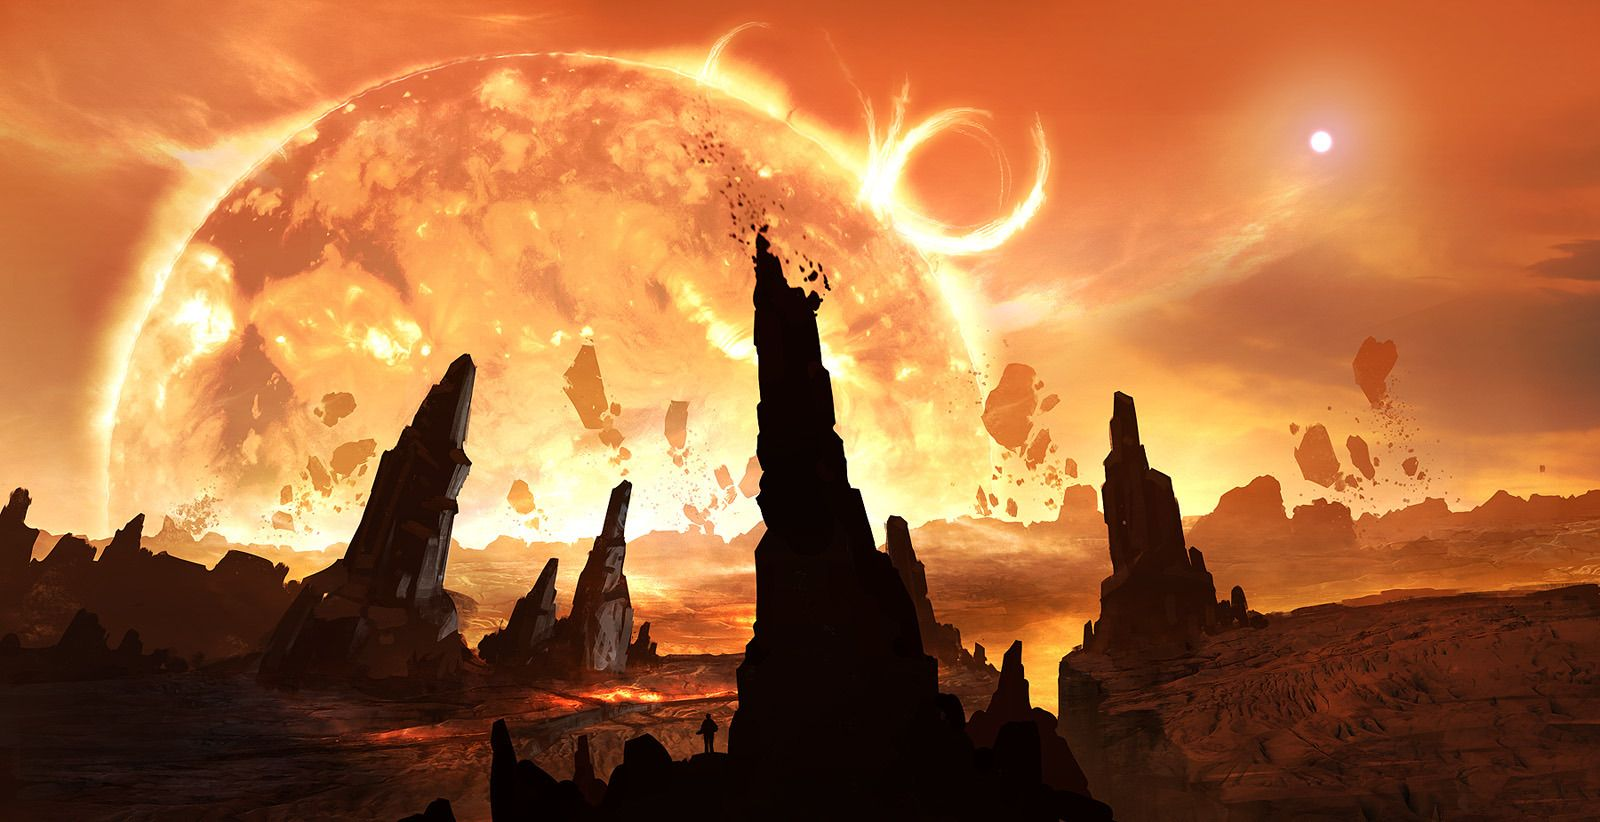 Red Giant Picture (big) by Layne Johnson LayneJohnson ...